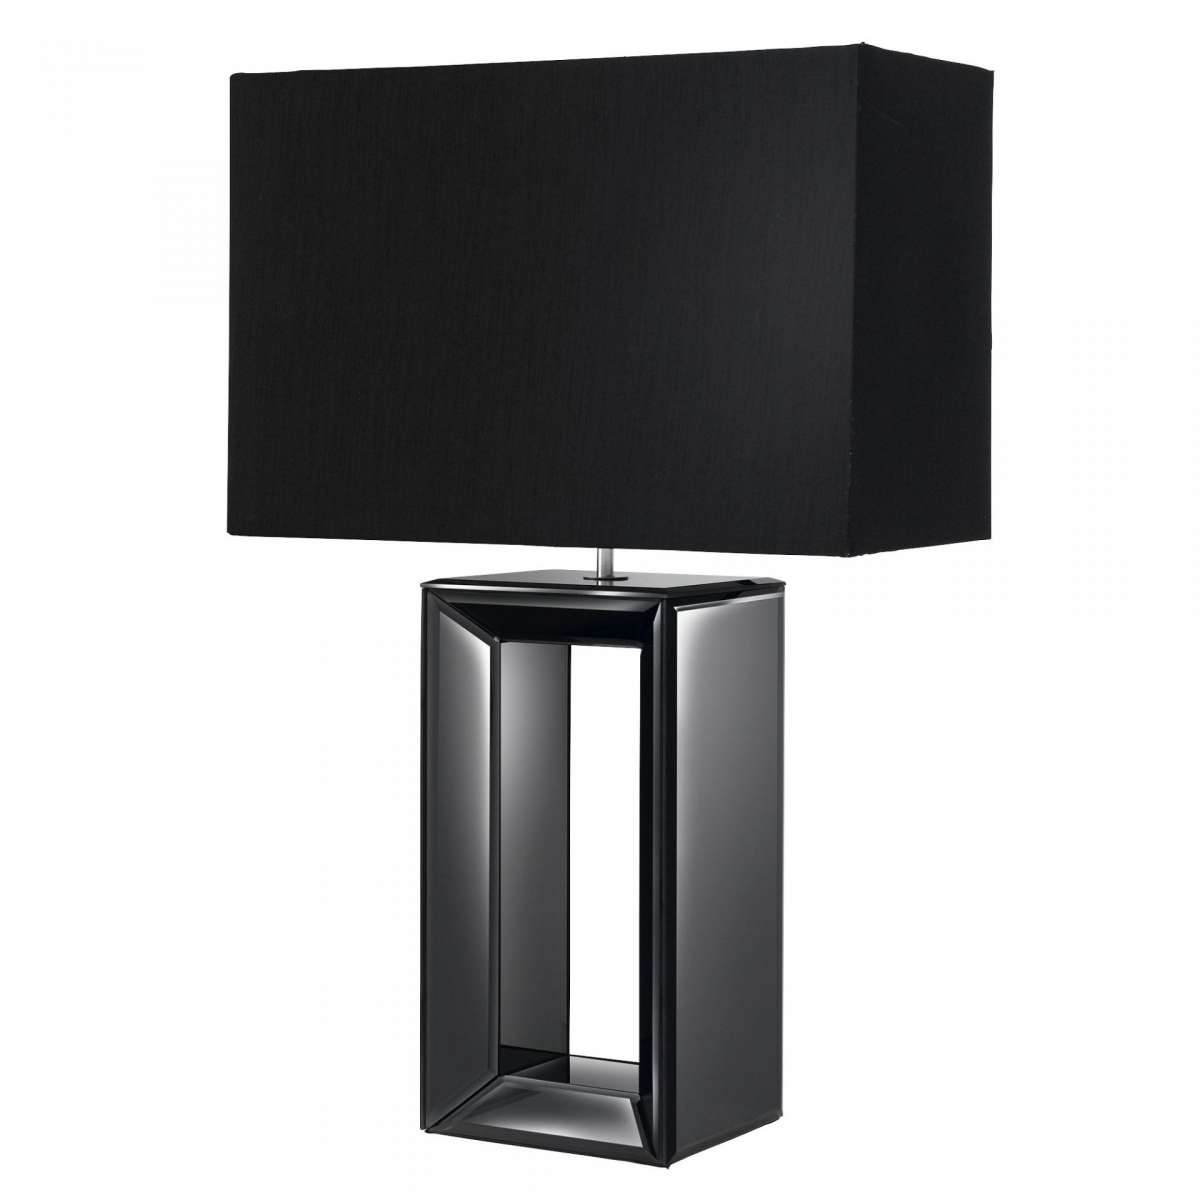 Black Mirror Reflection Table Lamp With Oblong Faux Silk Black Shade